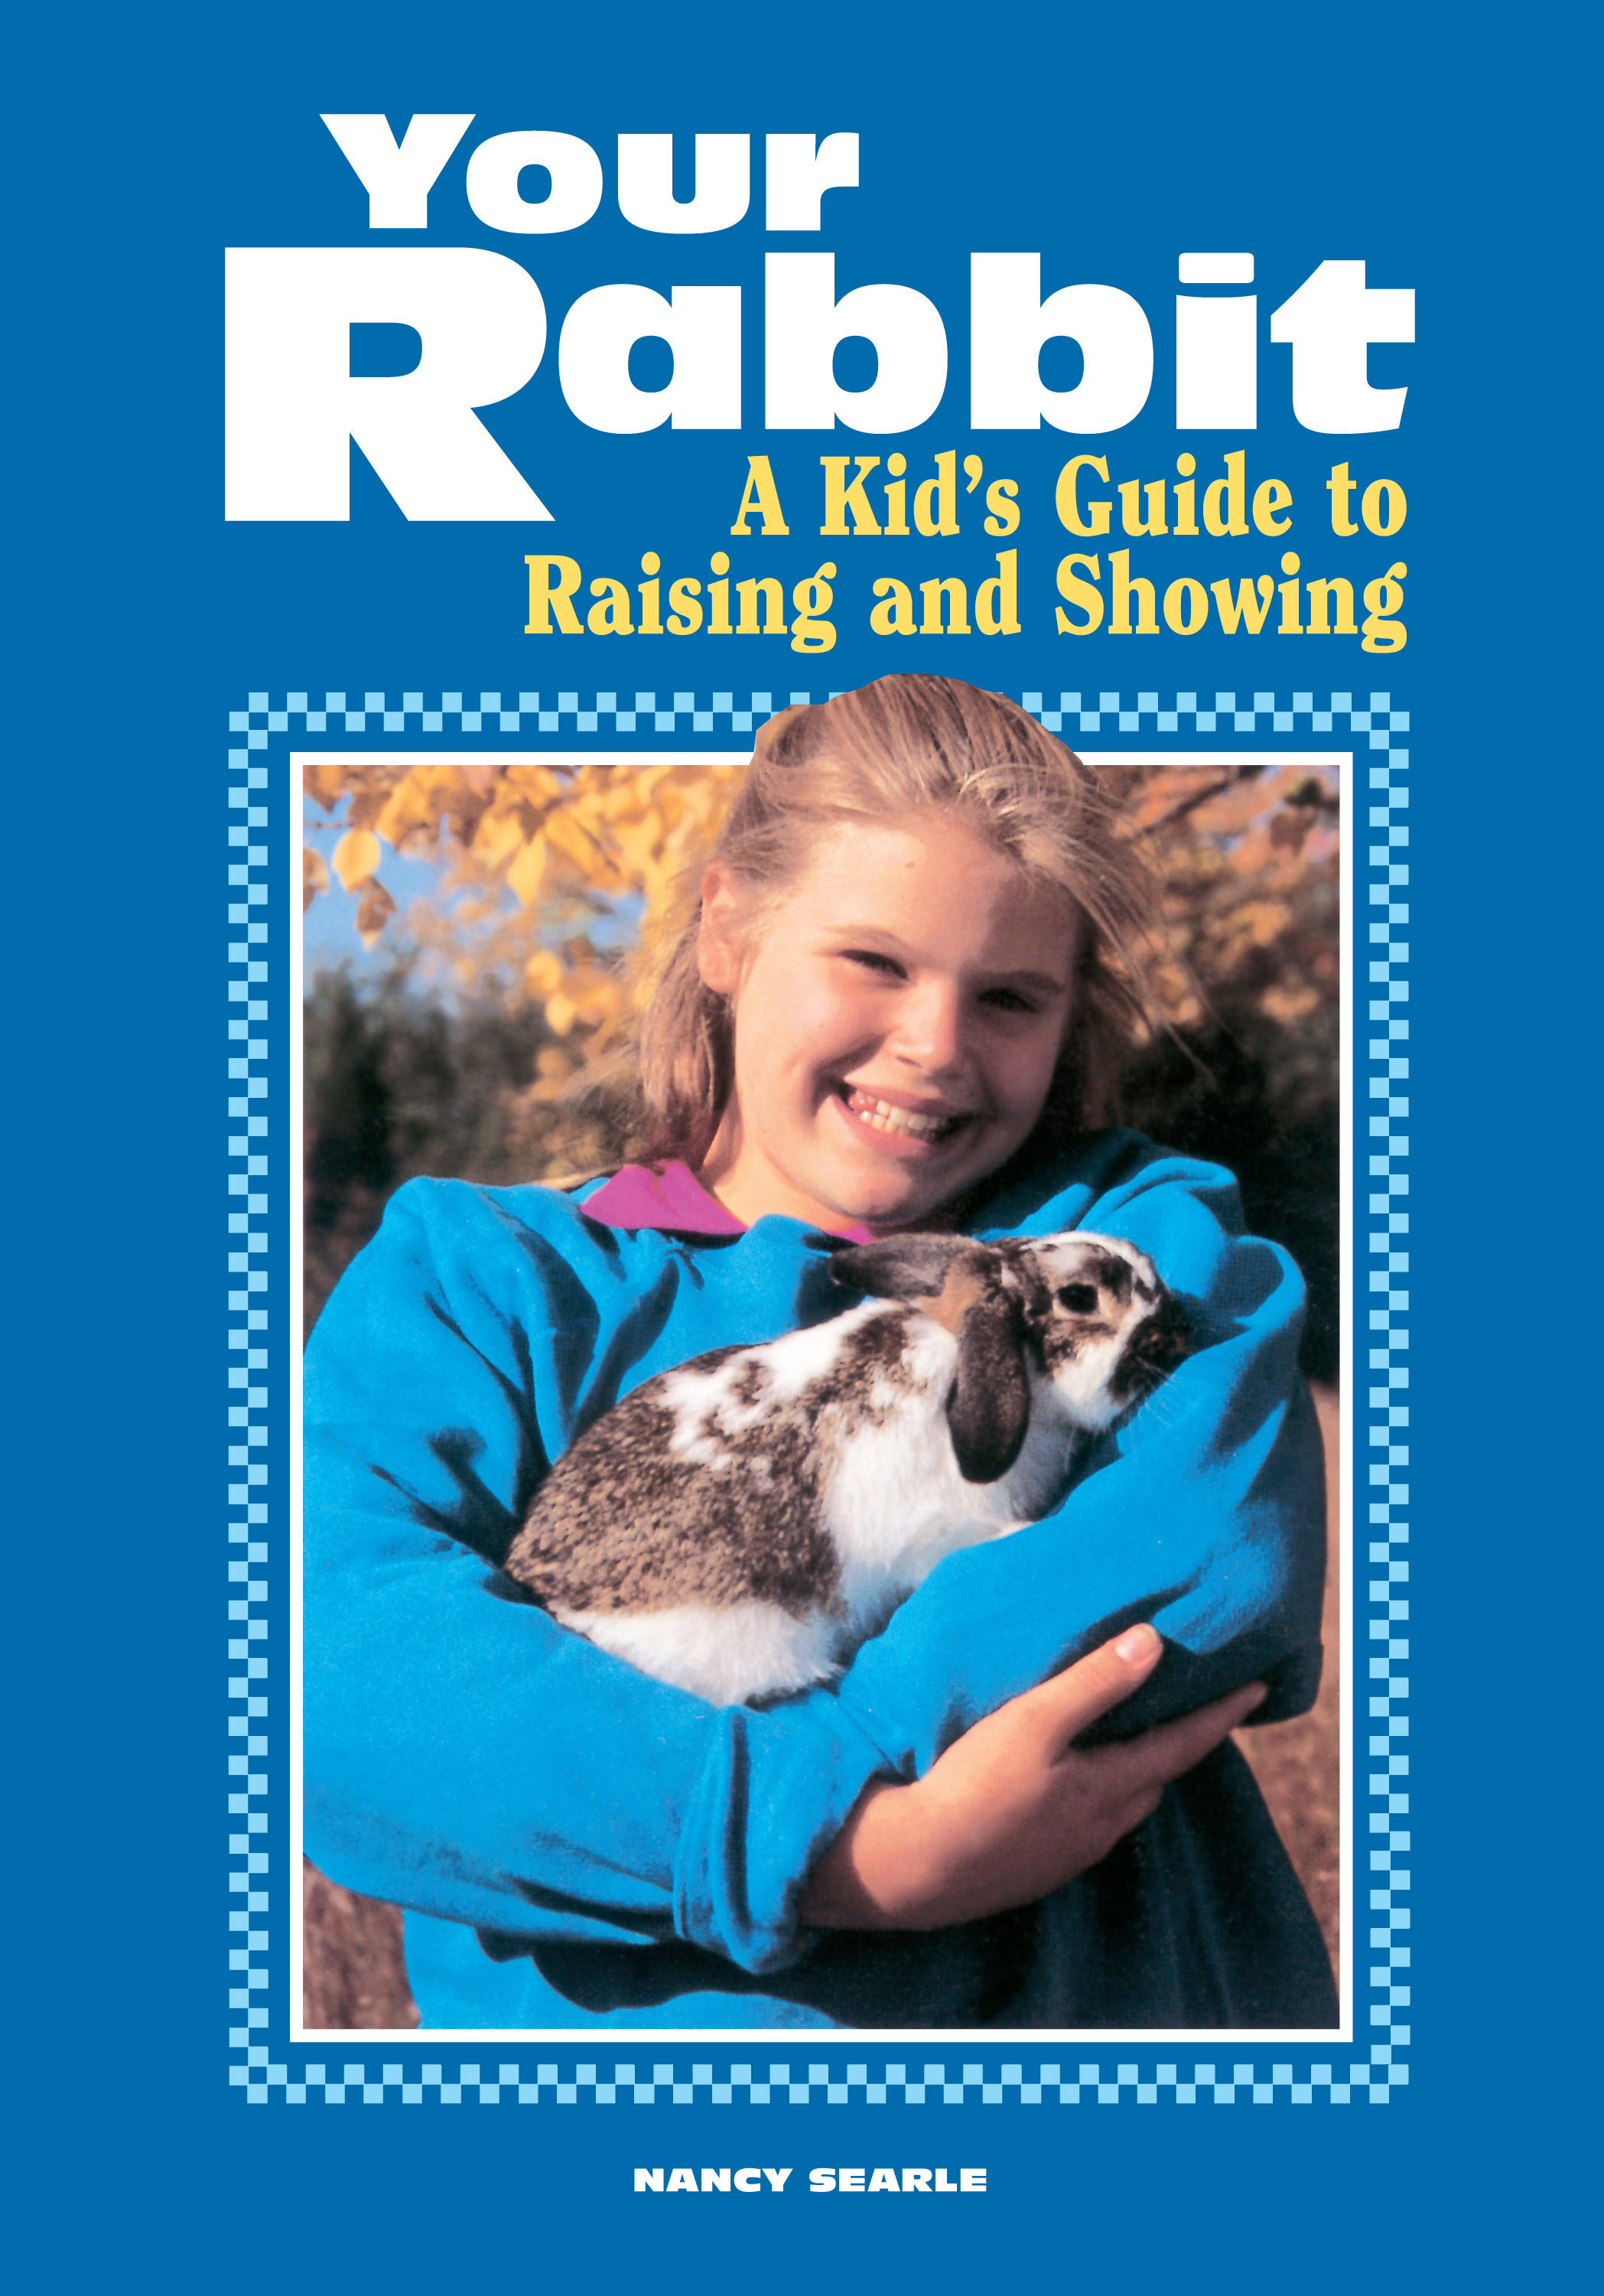 Your Rabbit A Kid's Guide to Raising and Showing - Nancy Searle